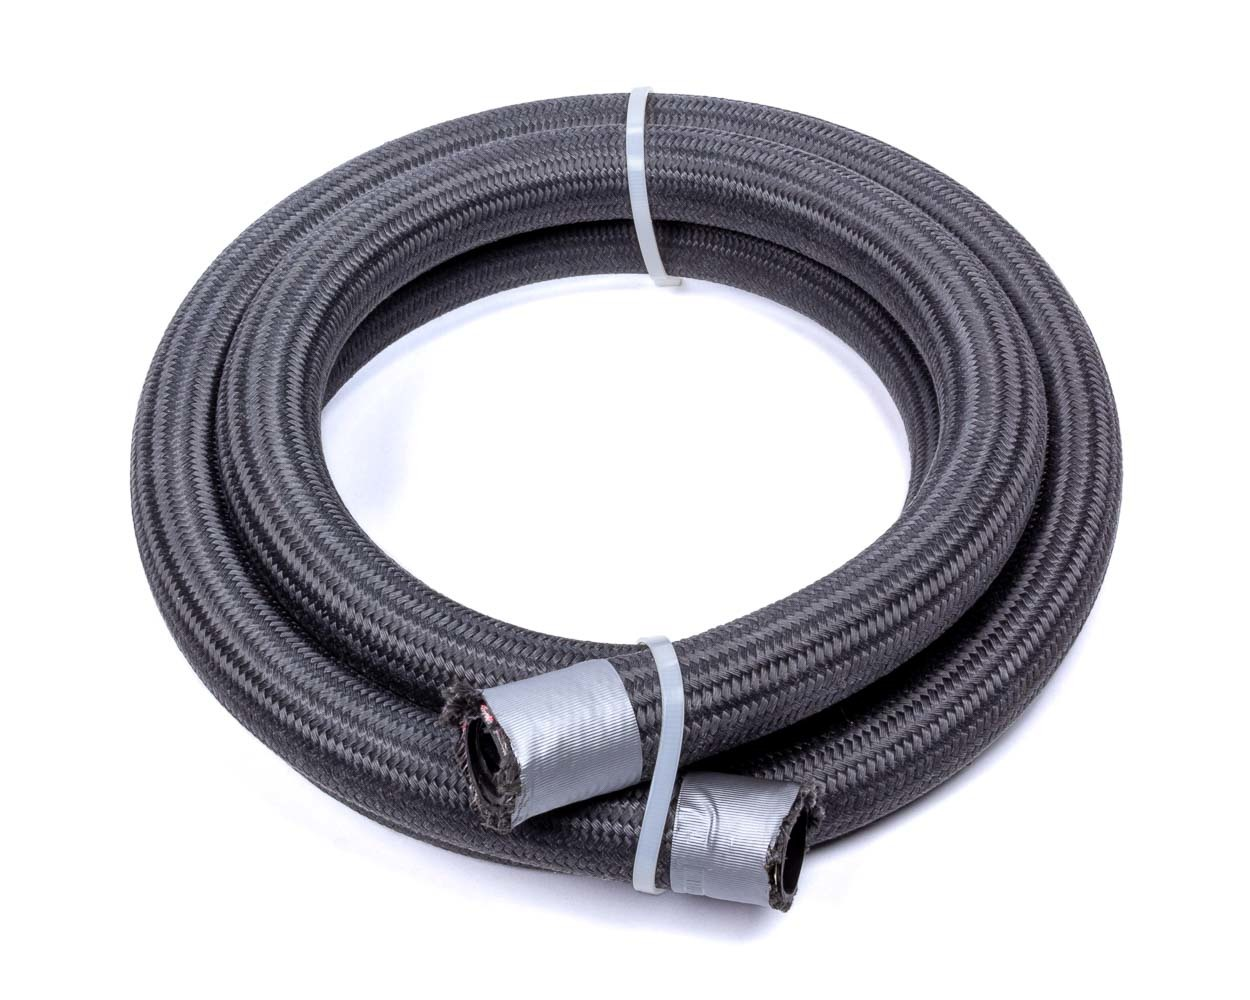 Fragola 2710612 Hose, 12 AN, 6 ft, Braided Fire Retardant Fabric, Wire Reinforced, PTFE, Black, Each